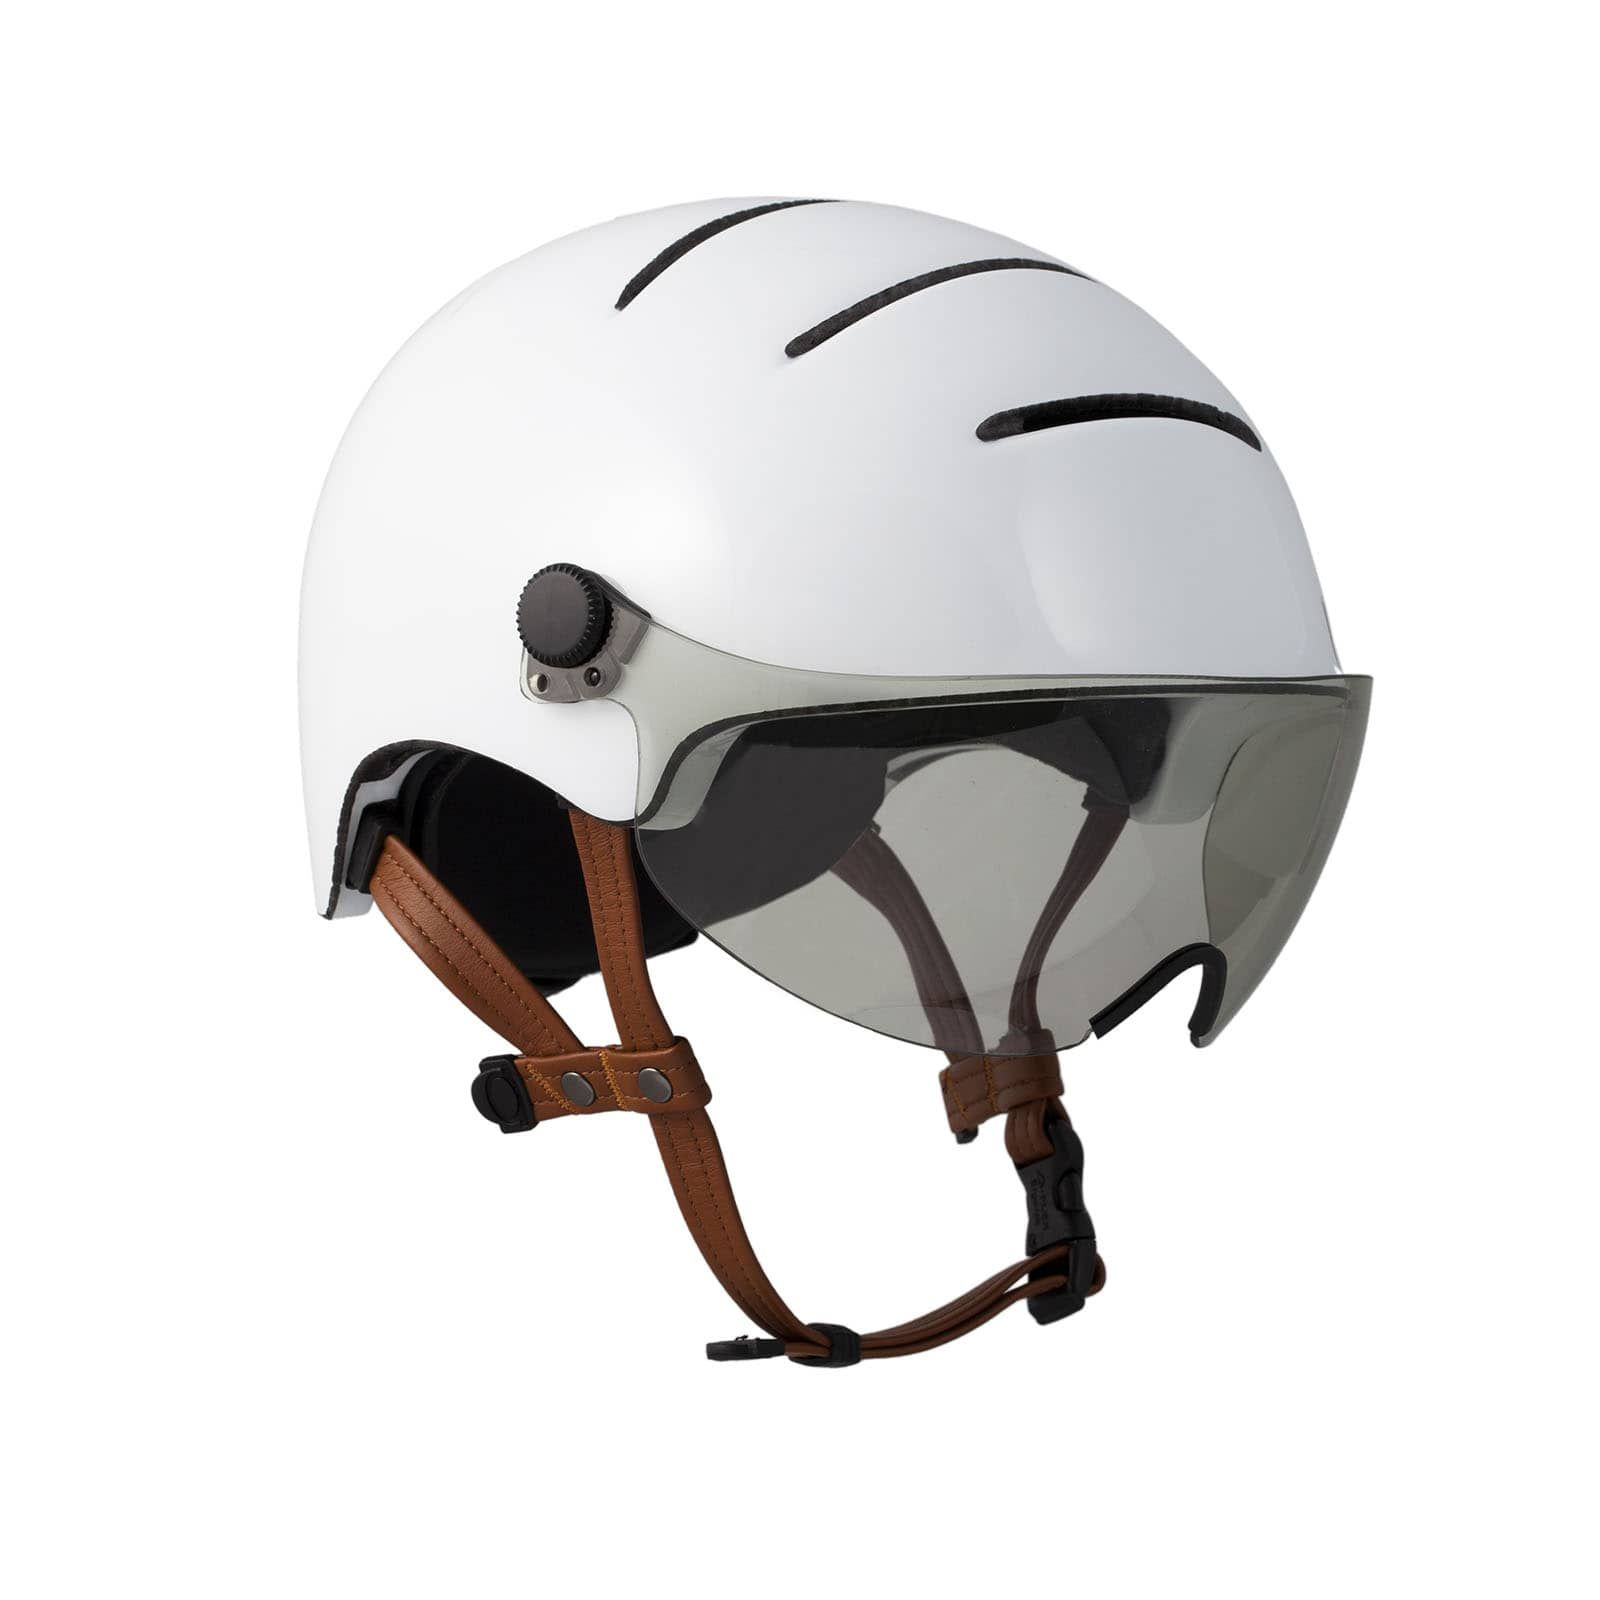 Lifestyle Keeps You Safe With A Vintage Inspired Design Eco Leather Chinstraps And A Light Smoke Visor To Protect Your Eyes Helmet Visor Helmet Cycling Helmet